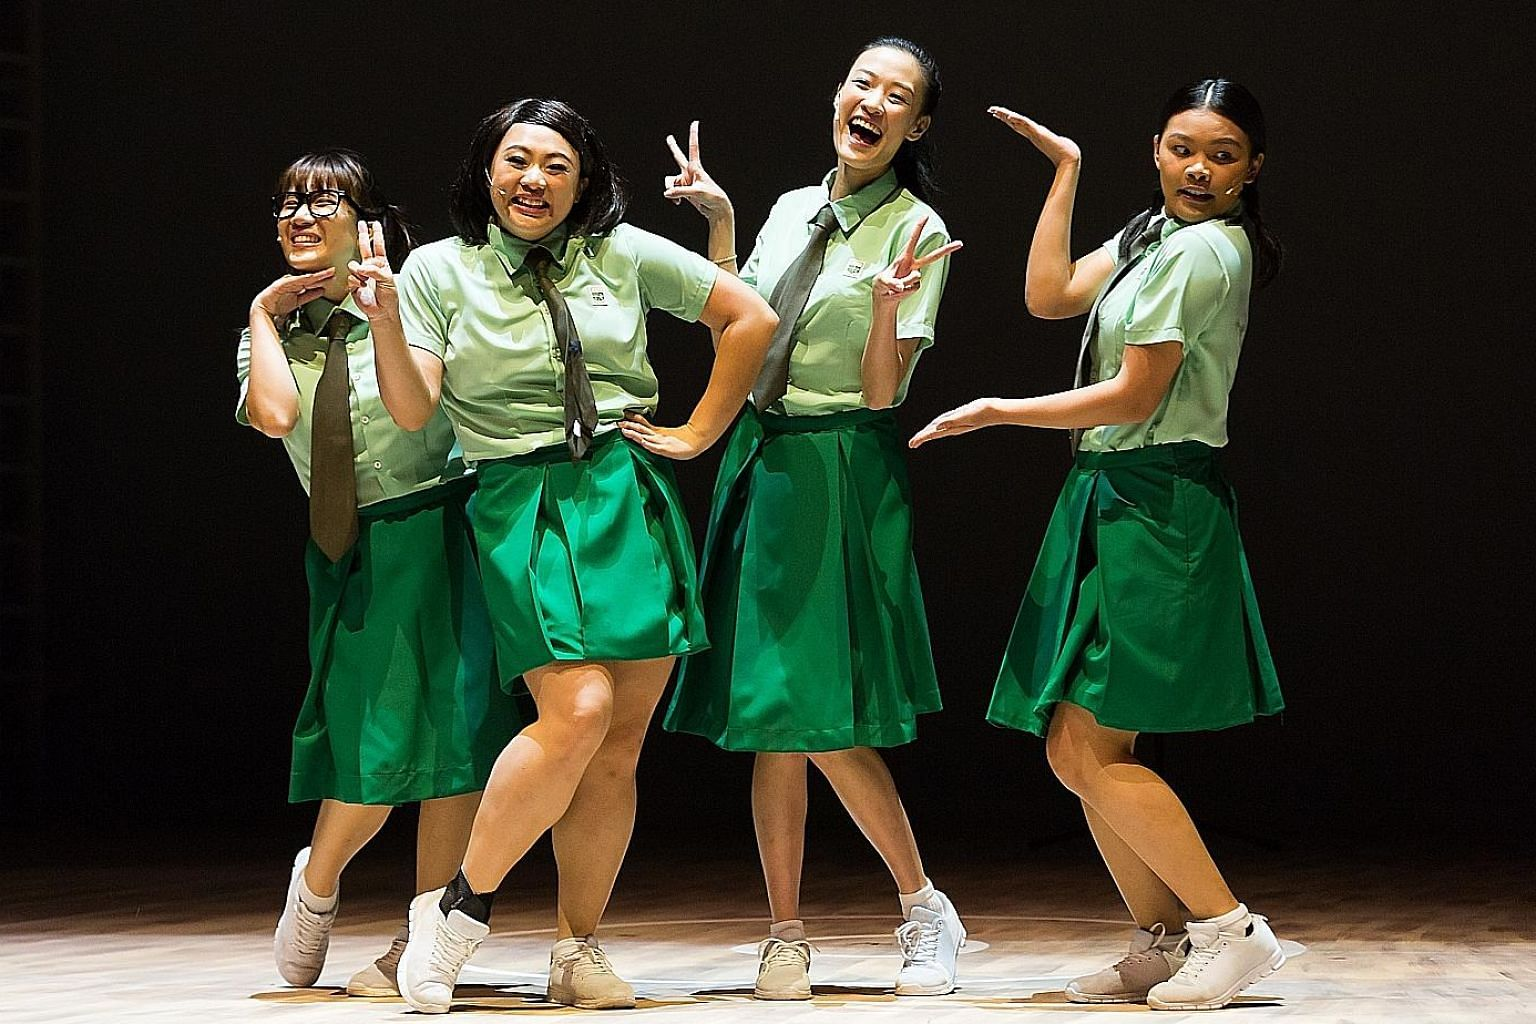 Actresses (from left) Natalie Yeap, Kimberly Chan, Valerie Choo and Alyssa Lie were as at ease acting as they were crooning Detention Katong's mellifluous melodies.